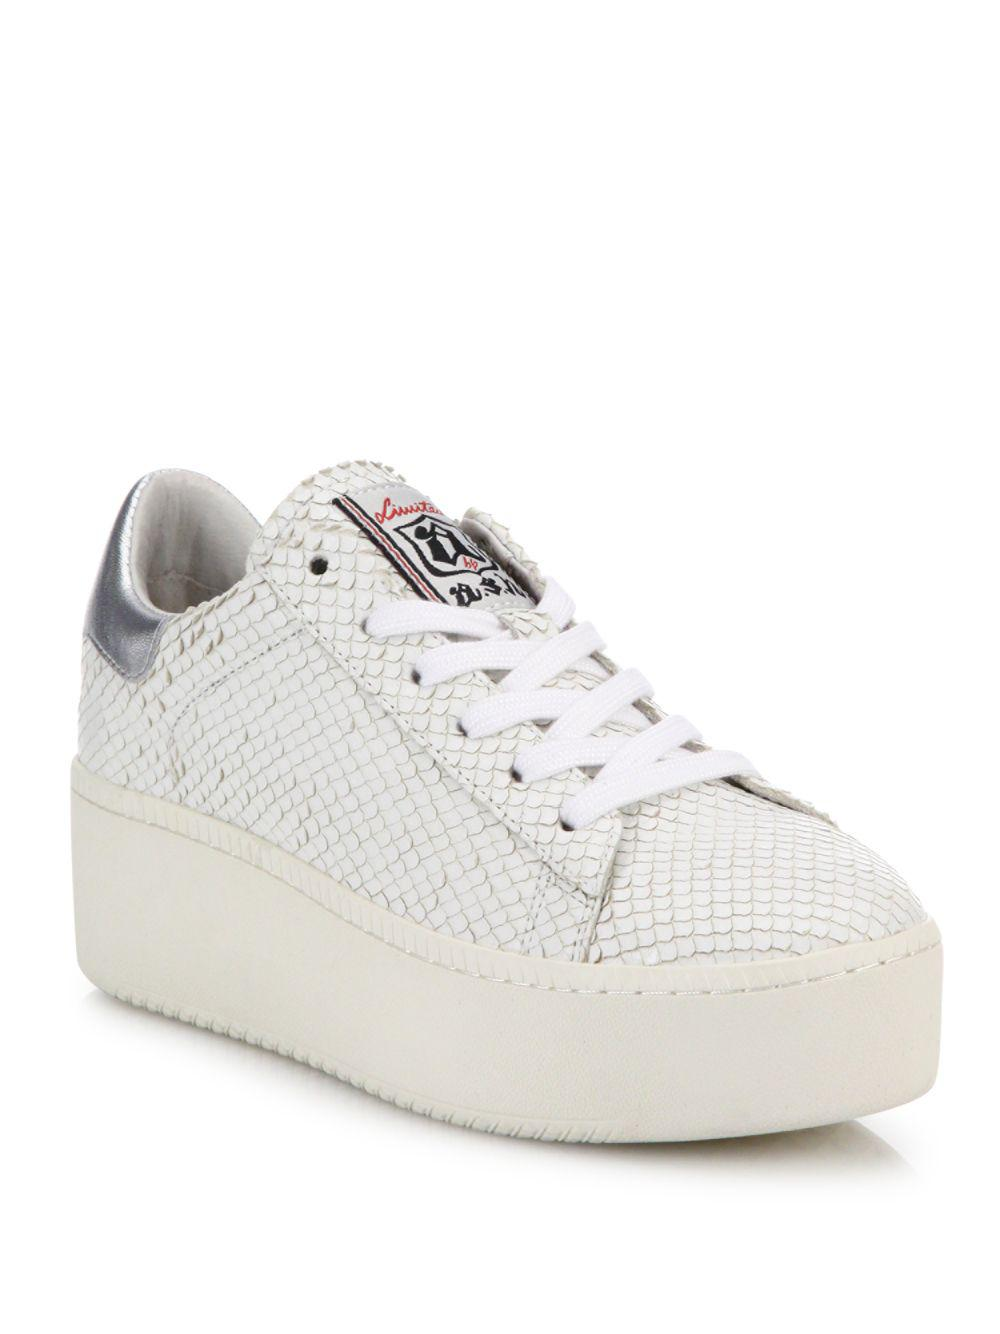 Ash. Women's White Cult Snake-embossed Leather Platform Trainers